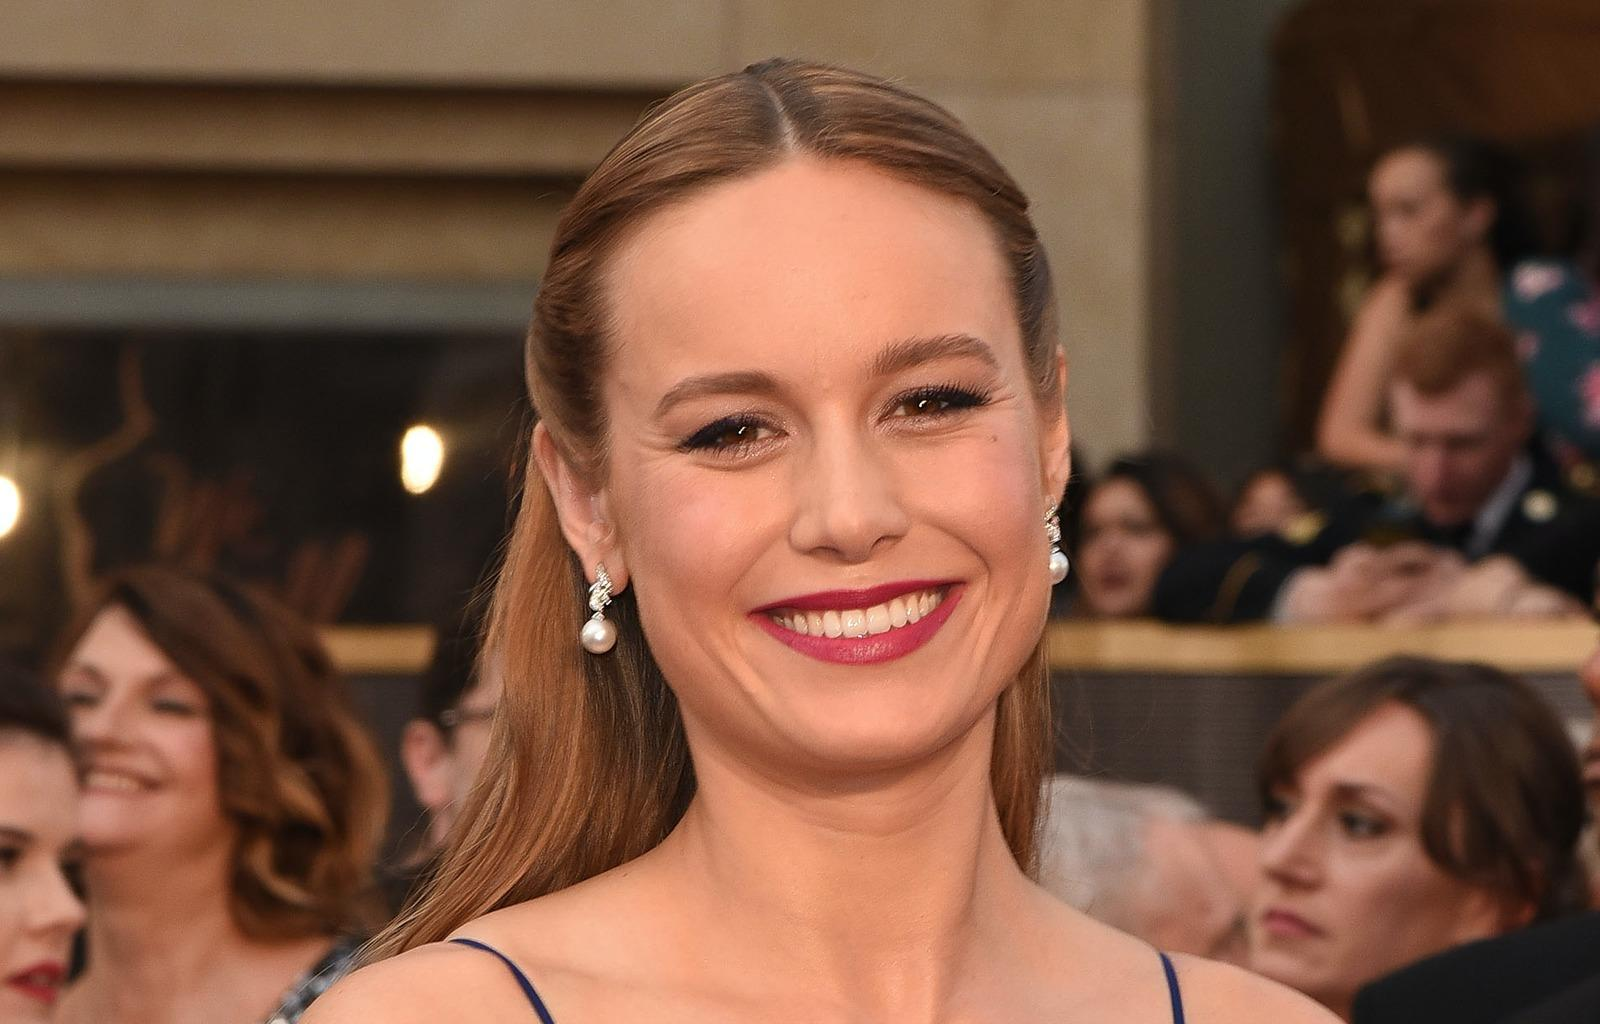 Brie Larson Gets Candid About Struggling With Social Anxiety On Her New YouTube Channel!